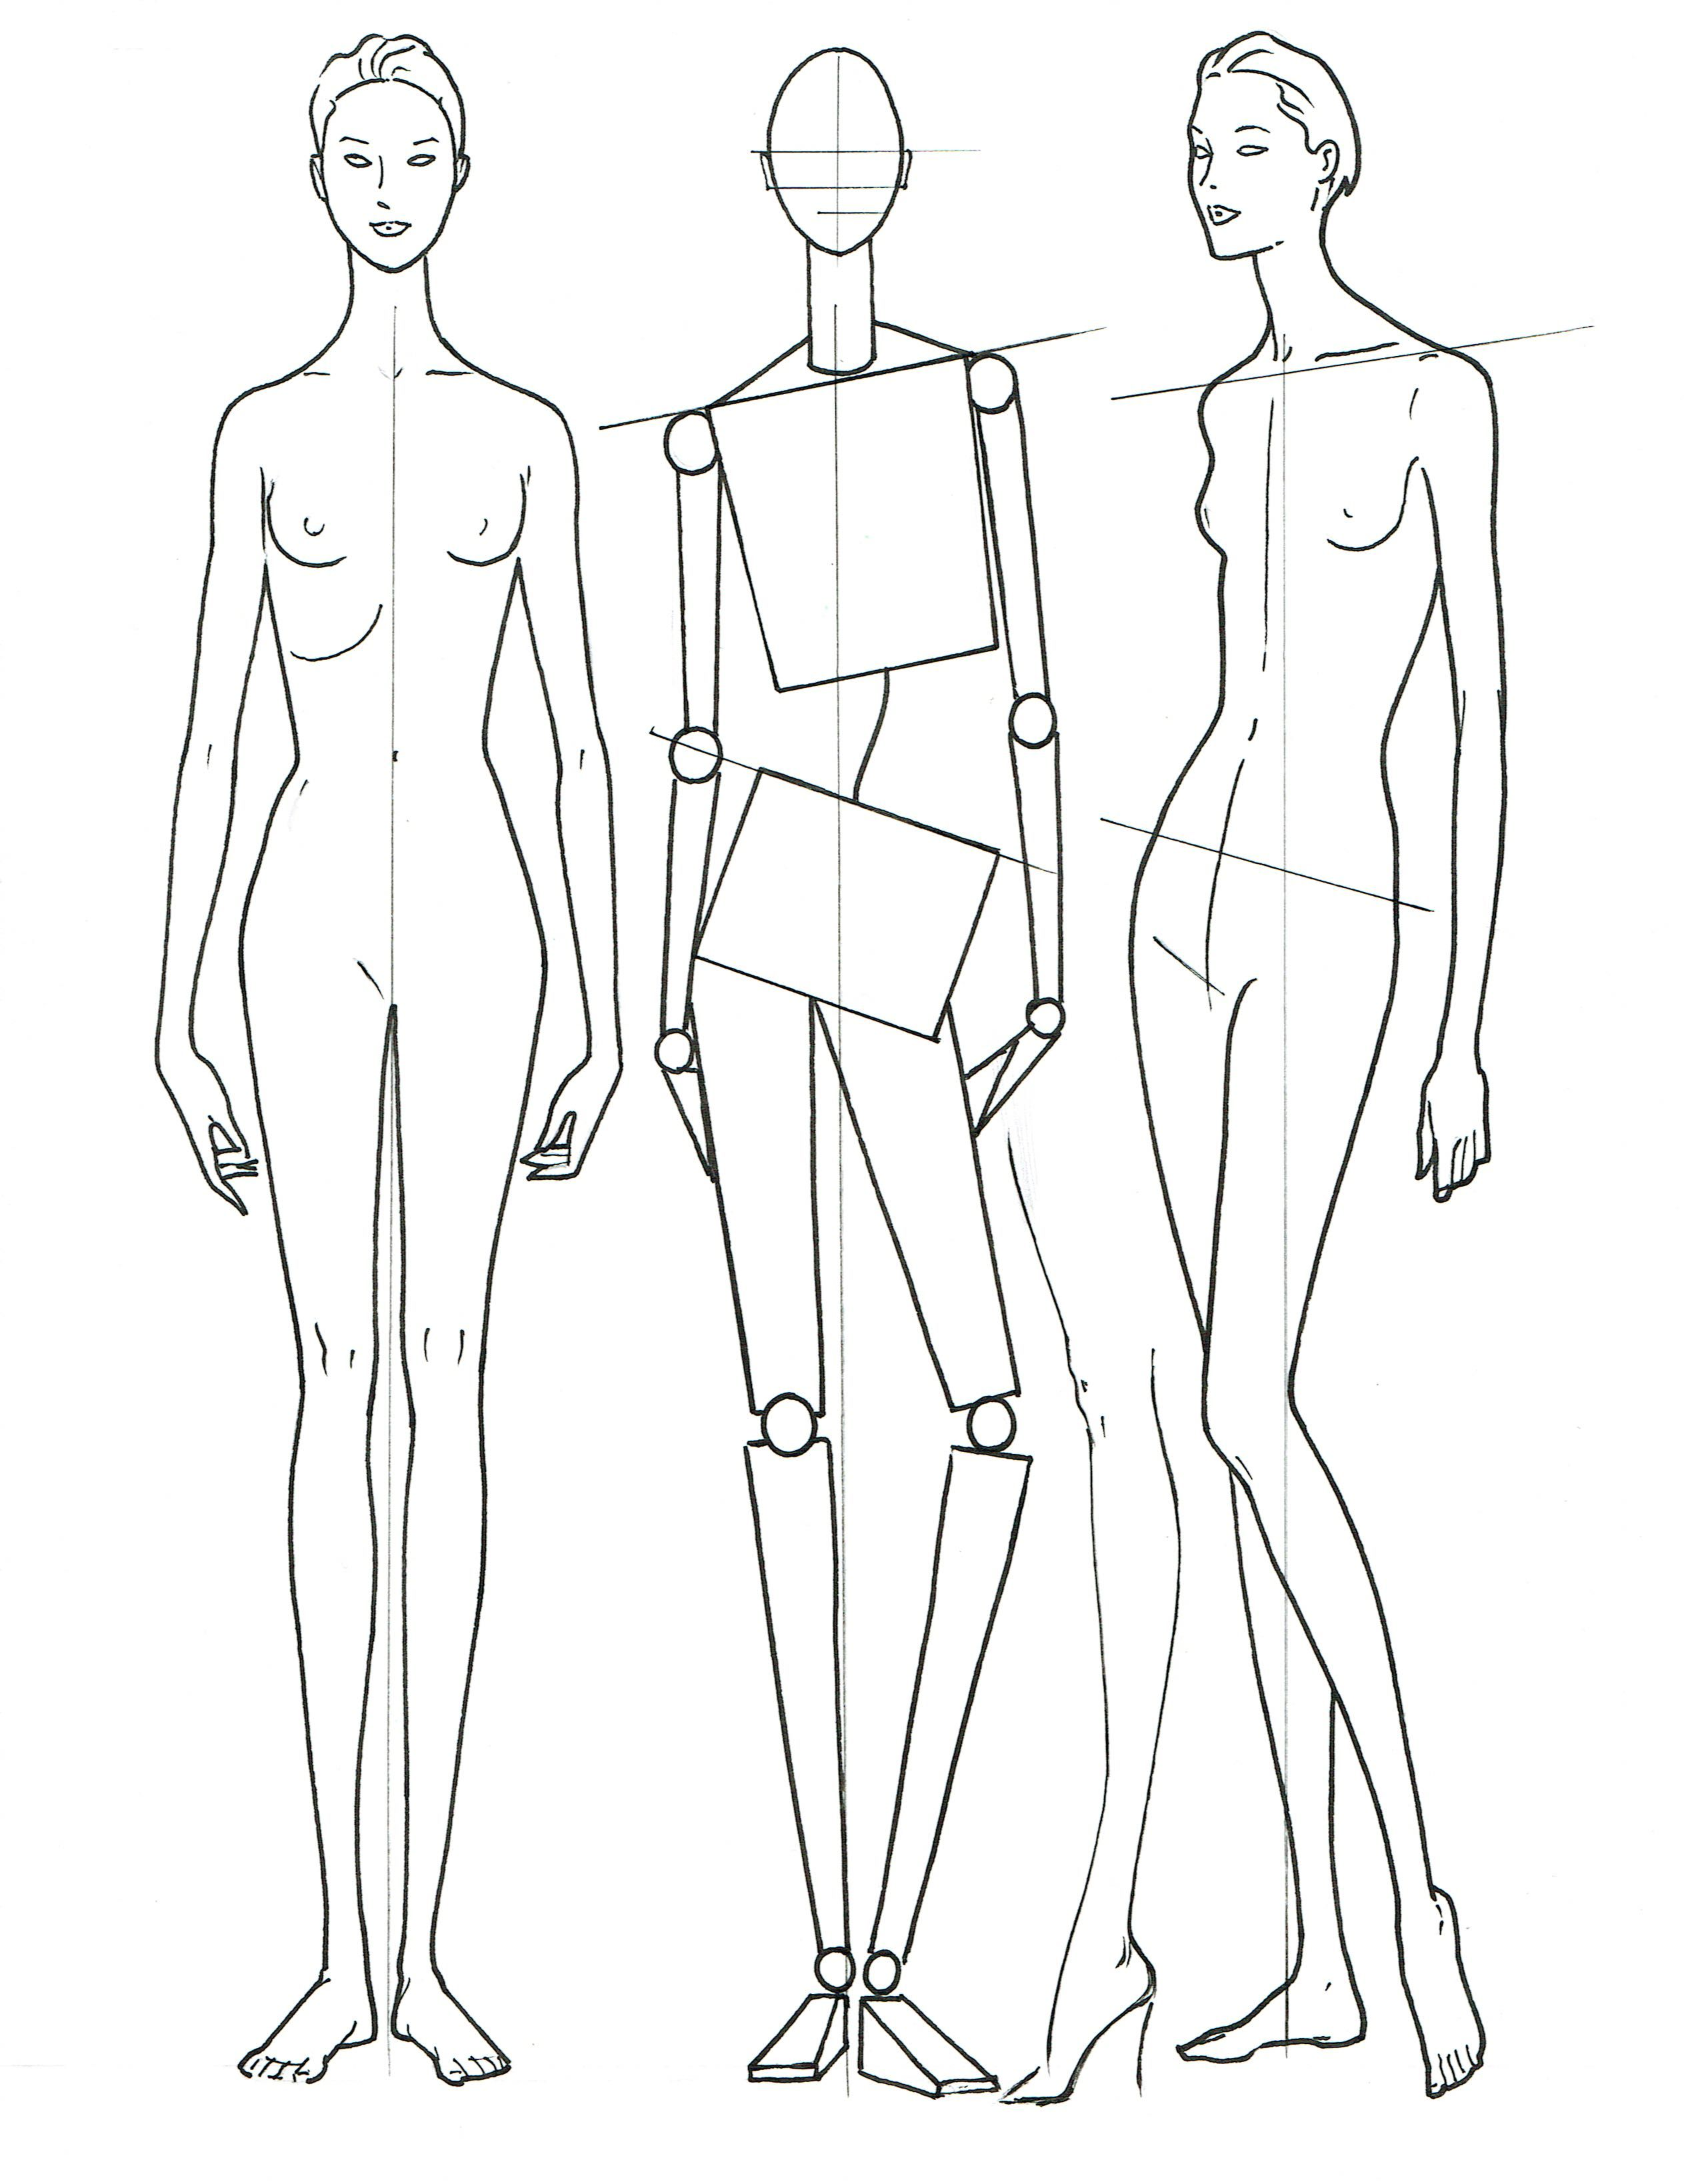 Women S Fashion Proportion Front And 3 4 View L O Neal Fashion Illustration Fashion Art Anatomy Sketches